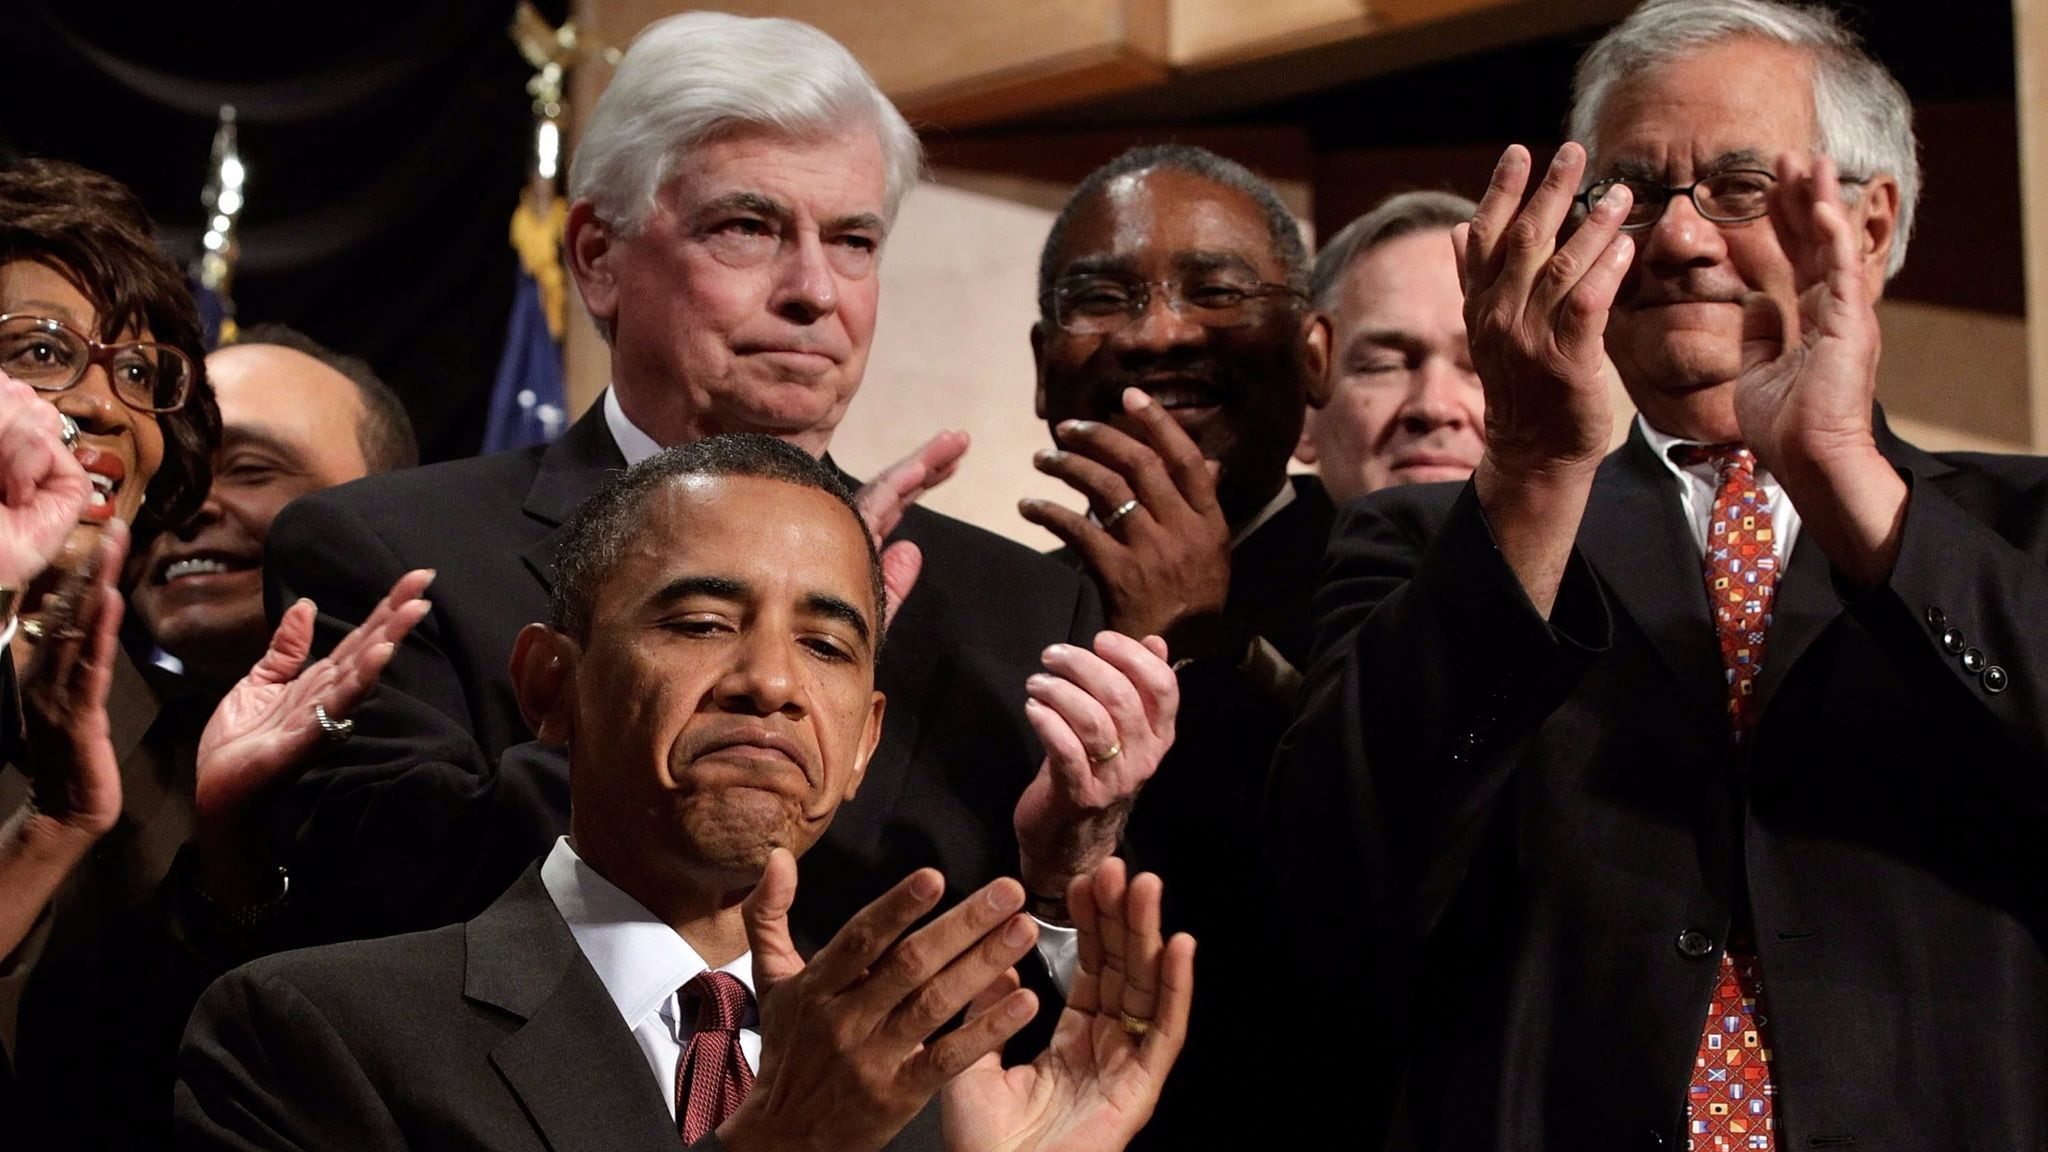 President Obama after signing the Dodd-Frank financial reform bill in 2010, as the law's namesakes, Sen. Christopher Dodd, behind Obama, and Rep. Barney Frank, right, applaud.